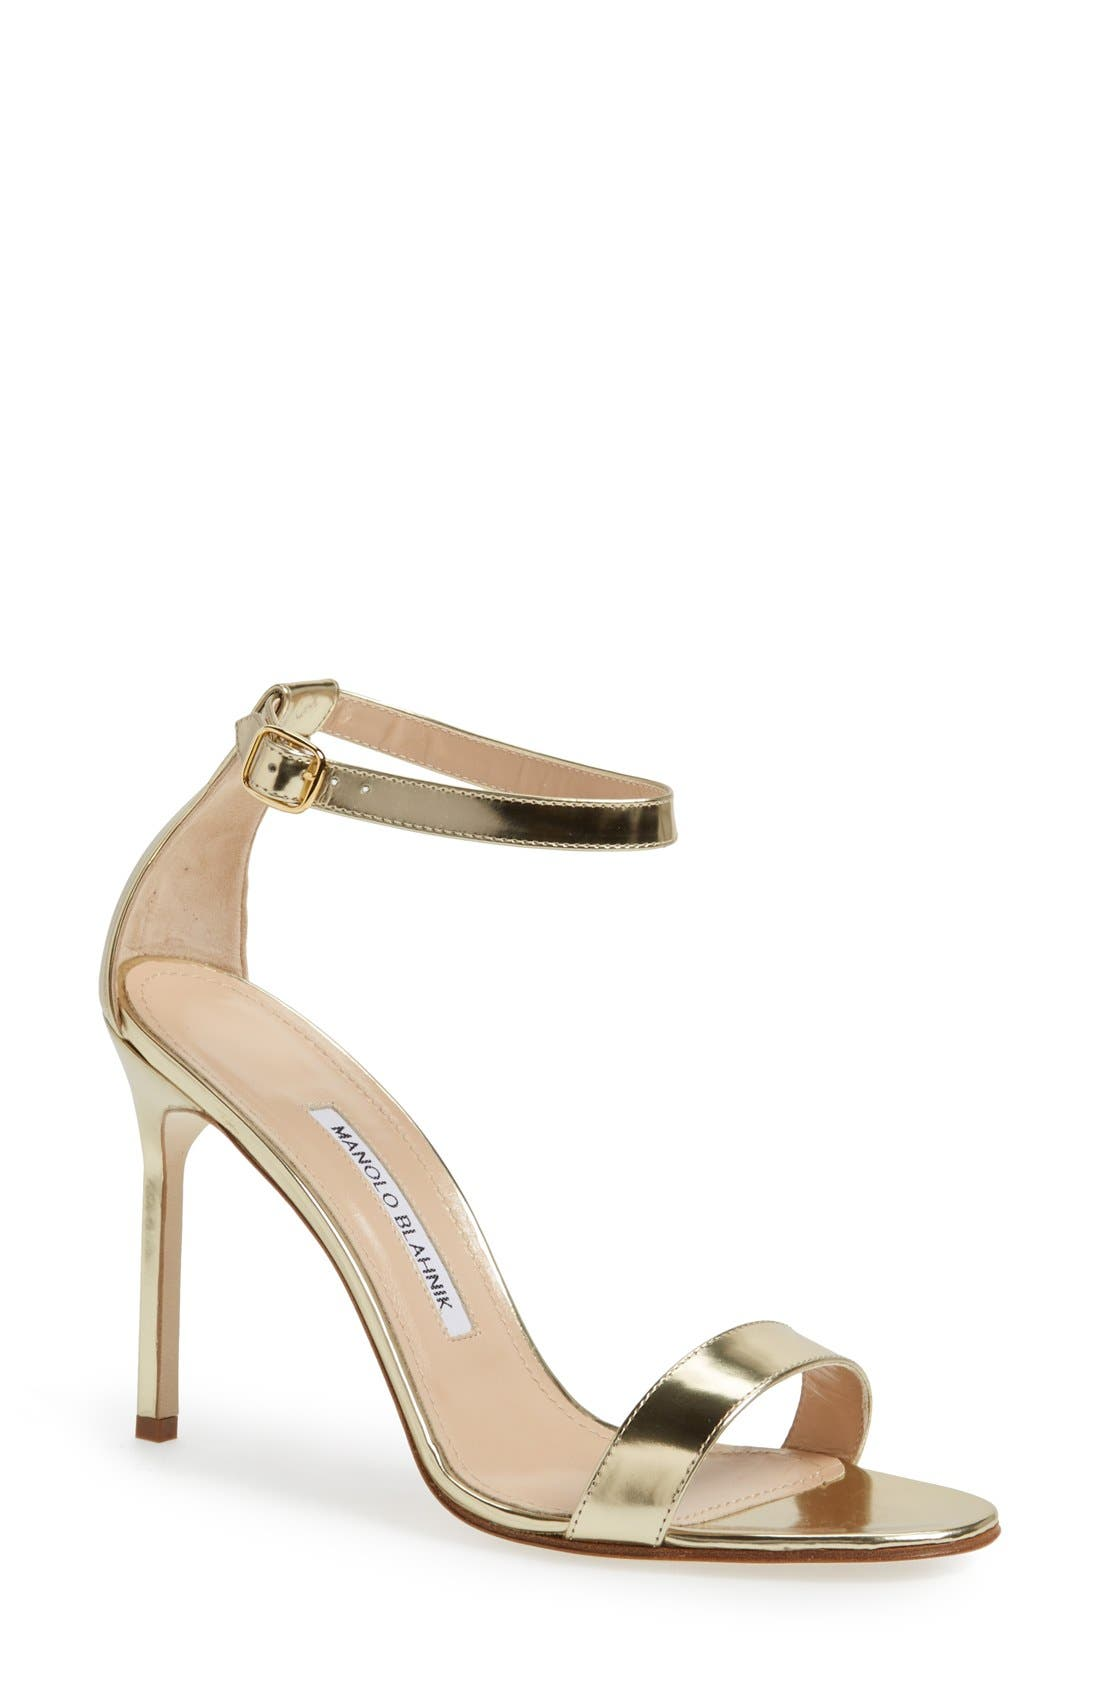 Alternate Image 1 Selected - Manolo Blahnik 'Chaos Cuff' Sandal (Women)